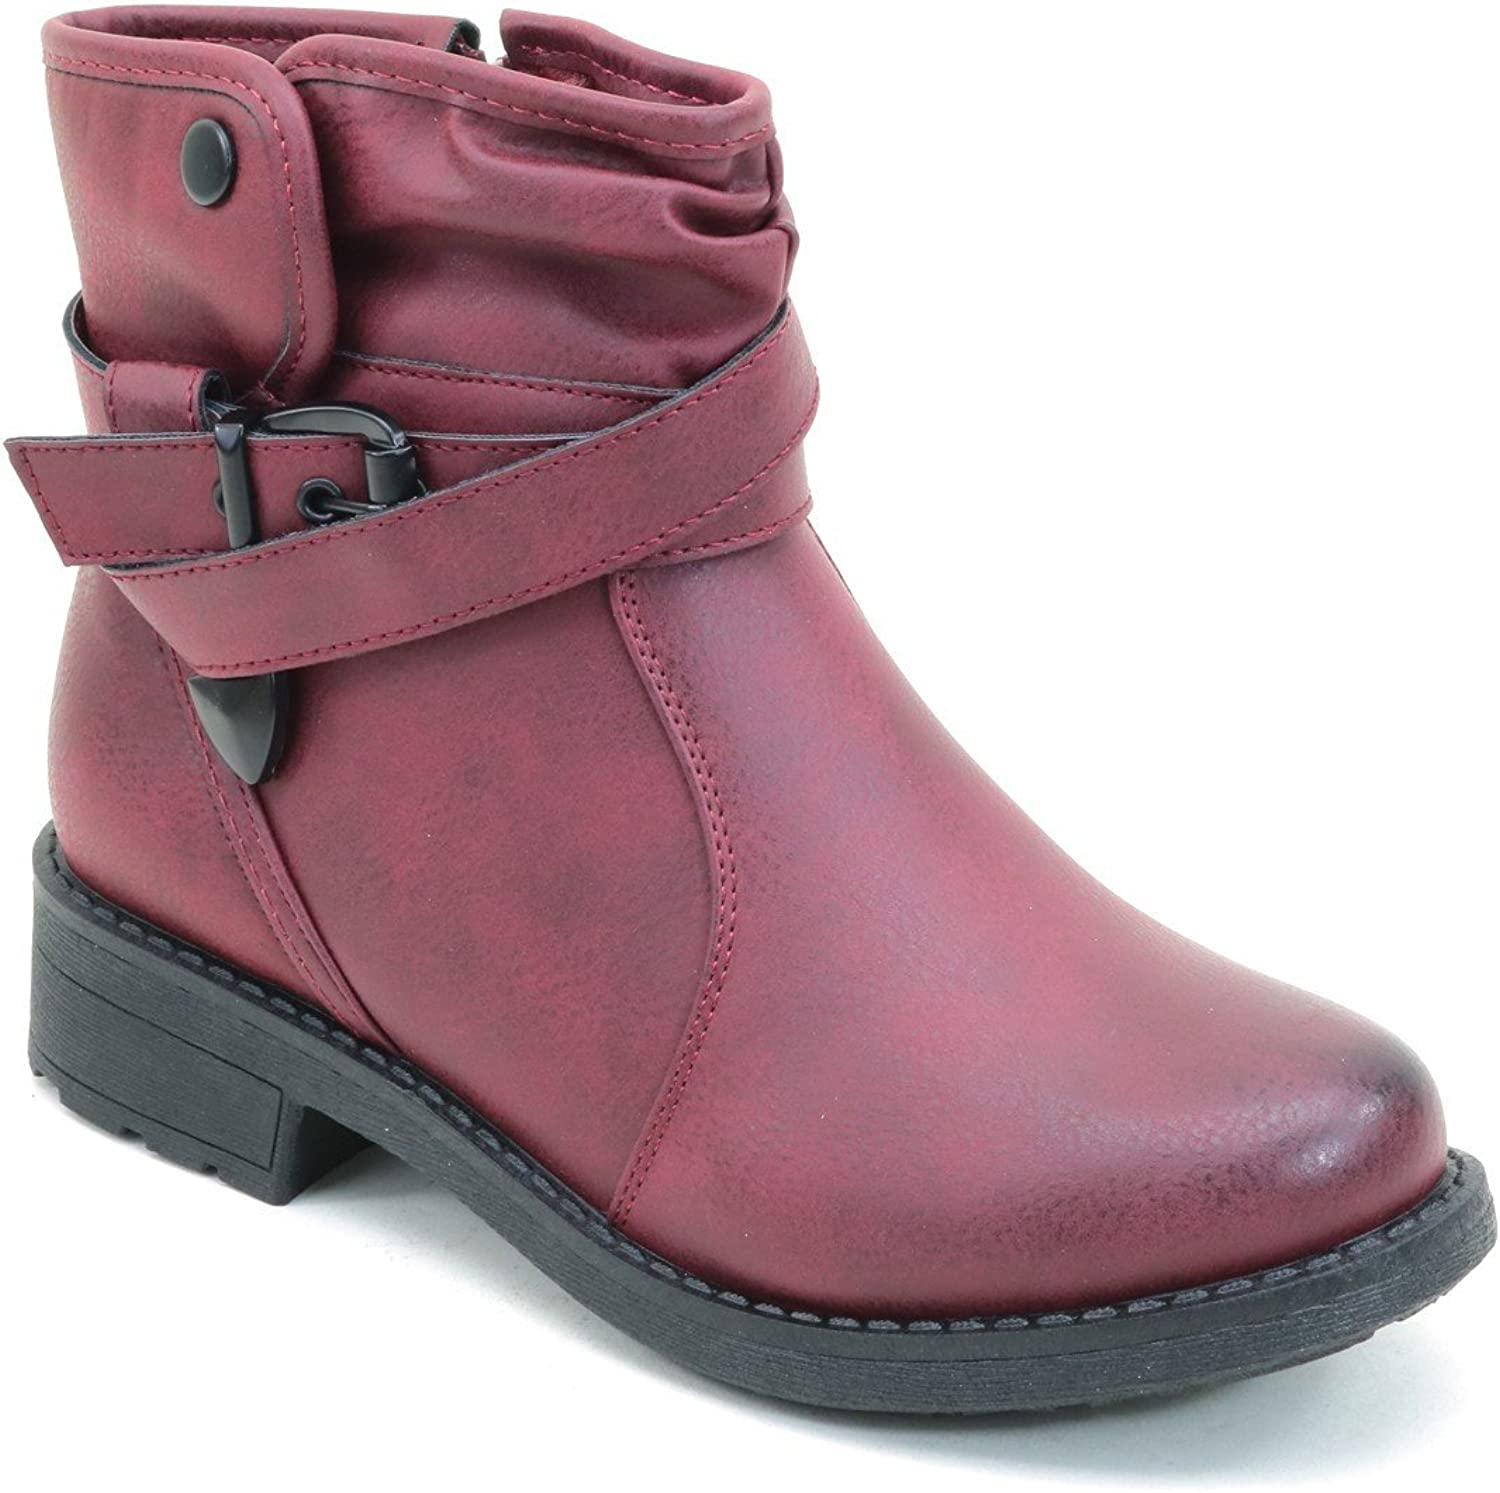 Distressed Buckle Flat Ankle Casual Women's Vegan Boots